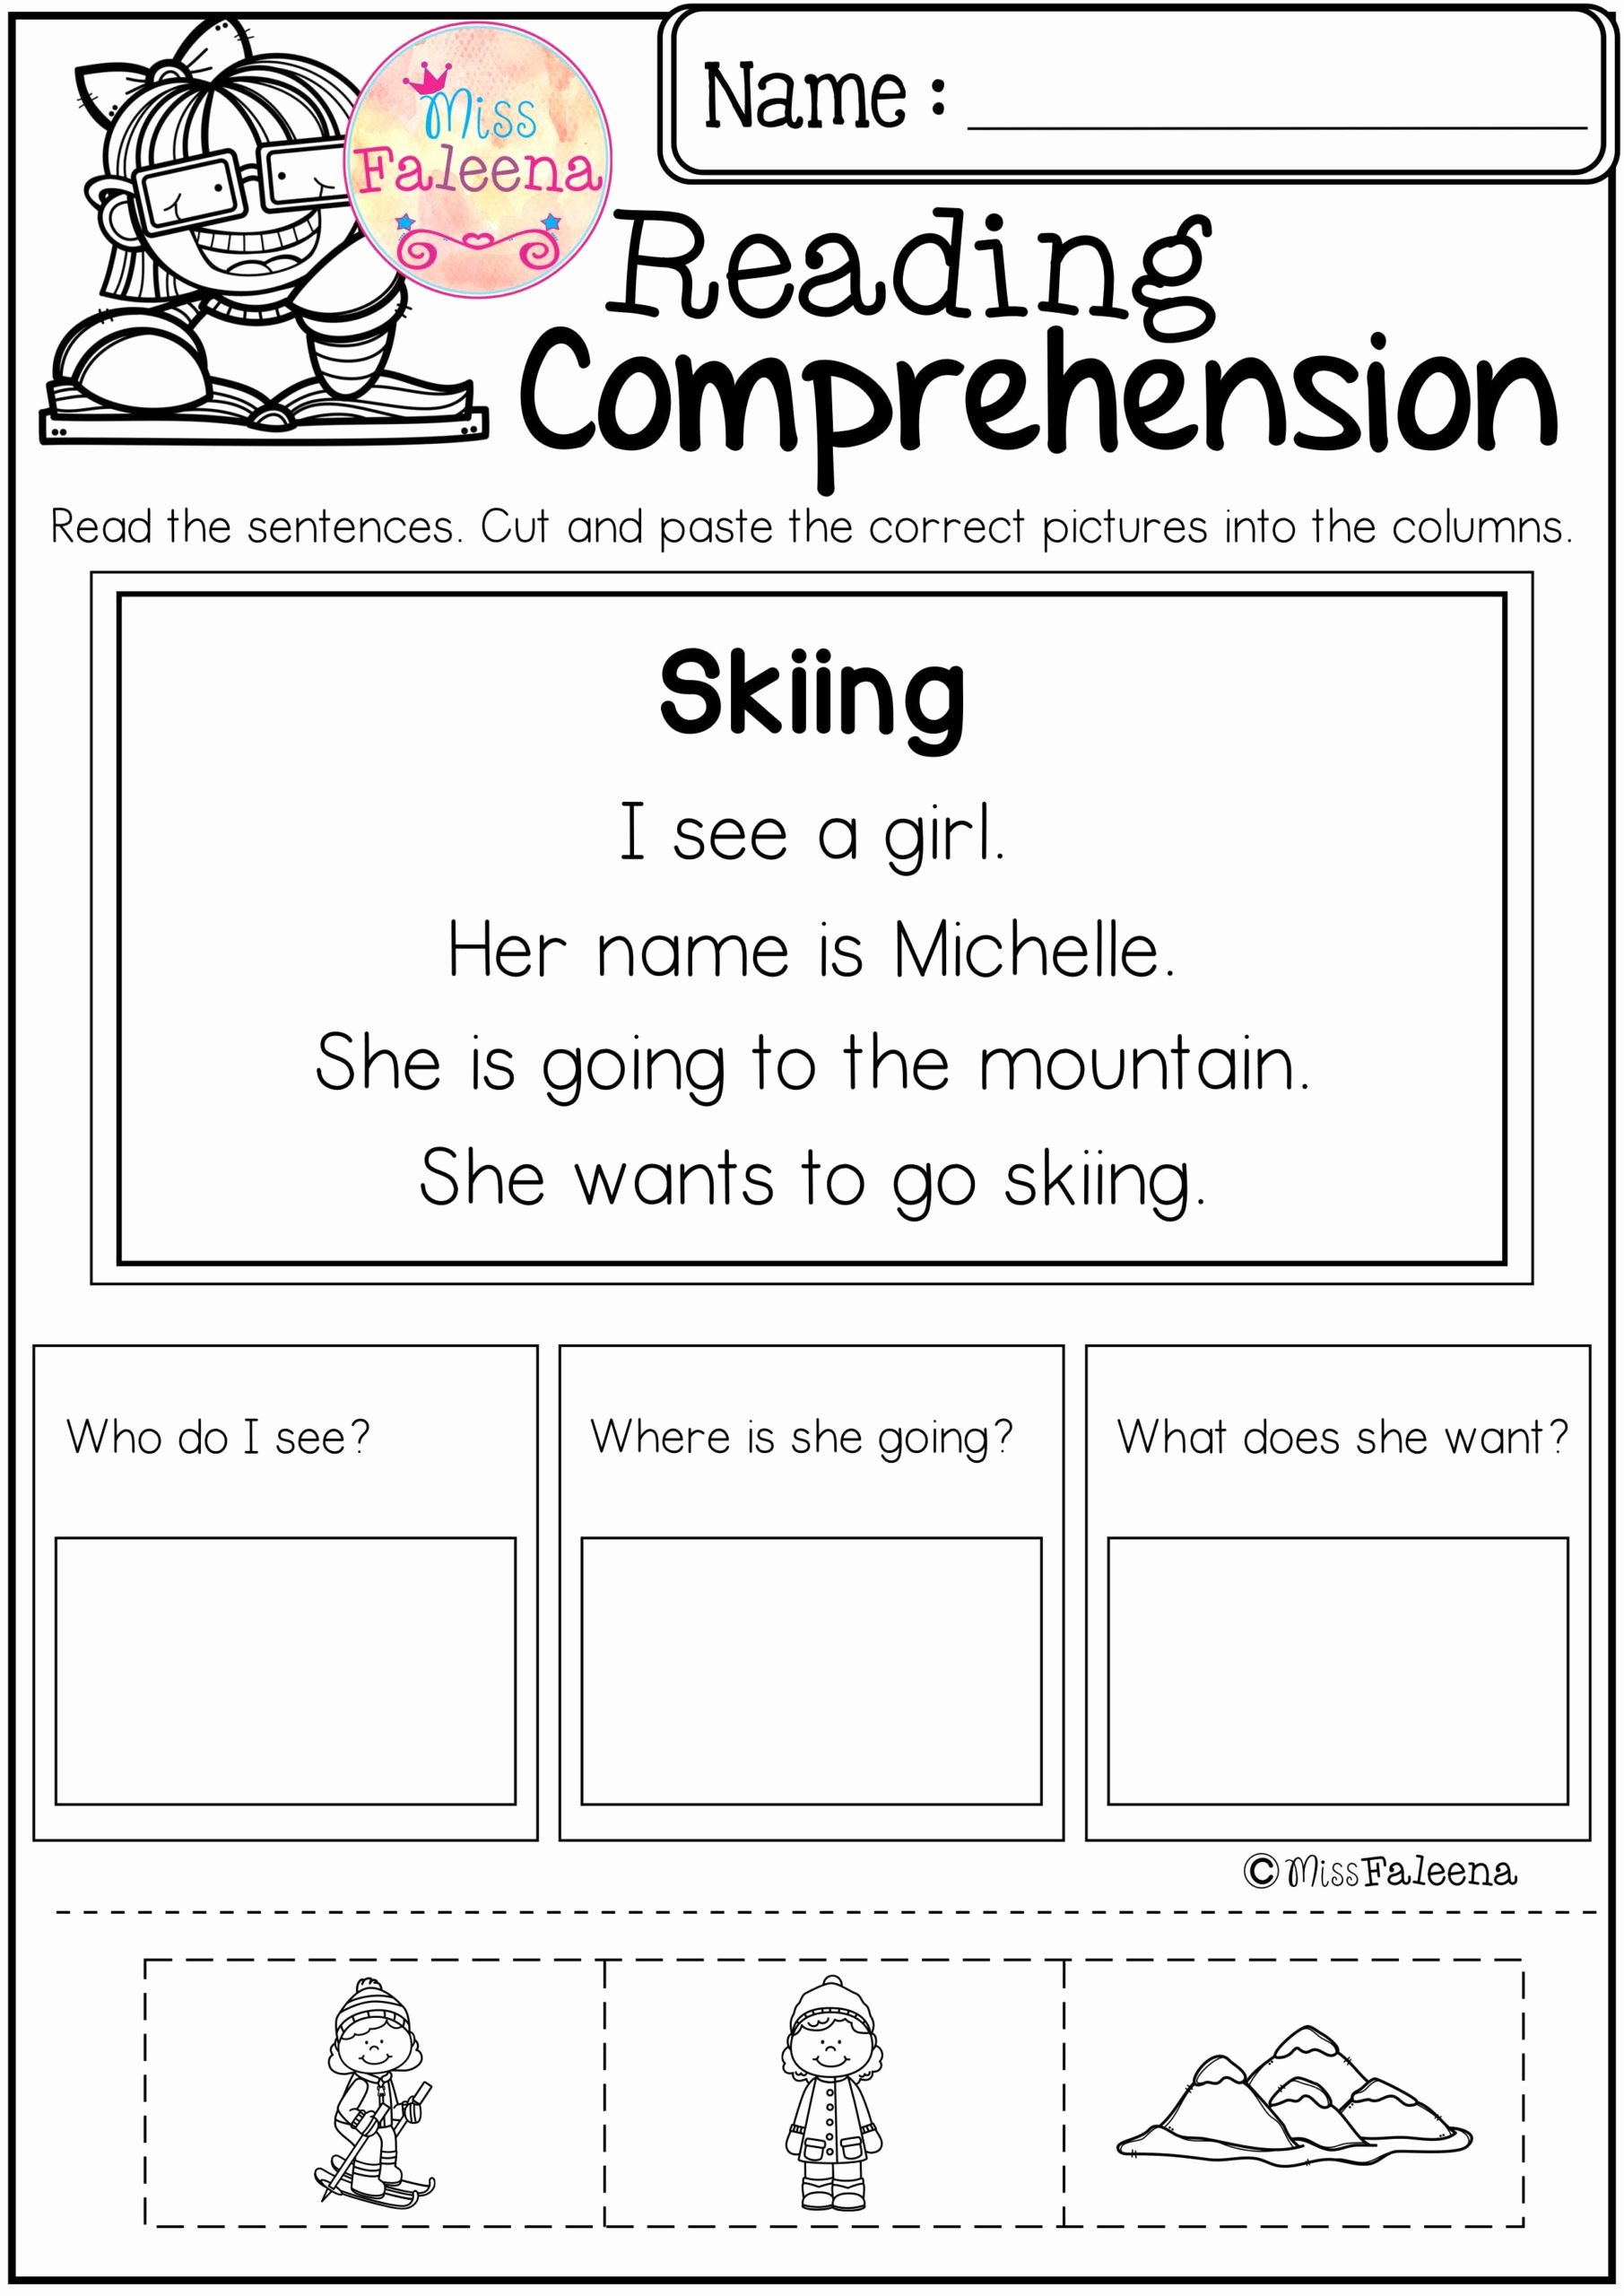 Reading Comprehension Kindergarten Worksheets Free Printable Math Worksheet Freeheets for Kindergarten Reading and